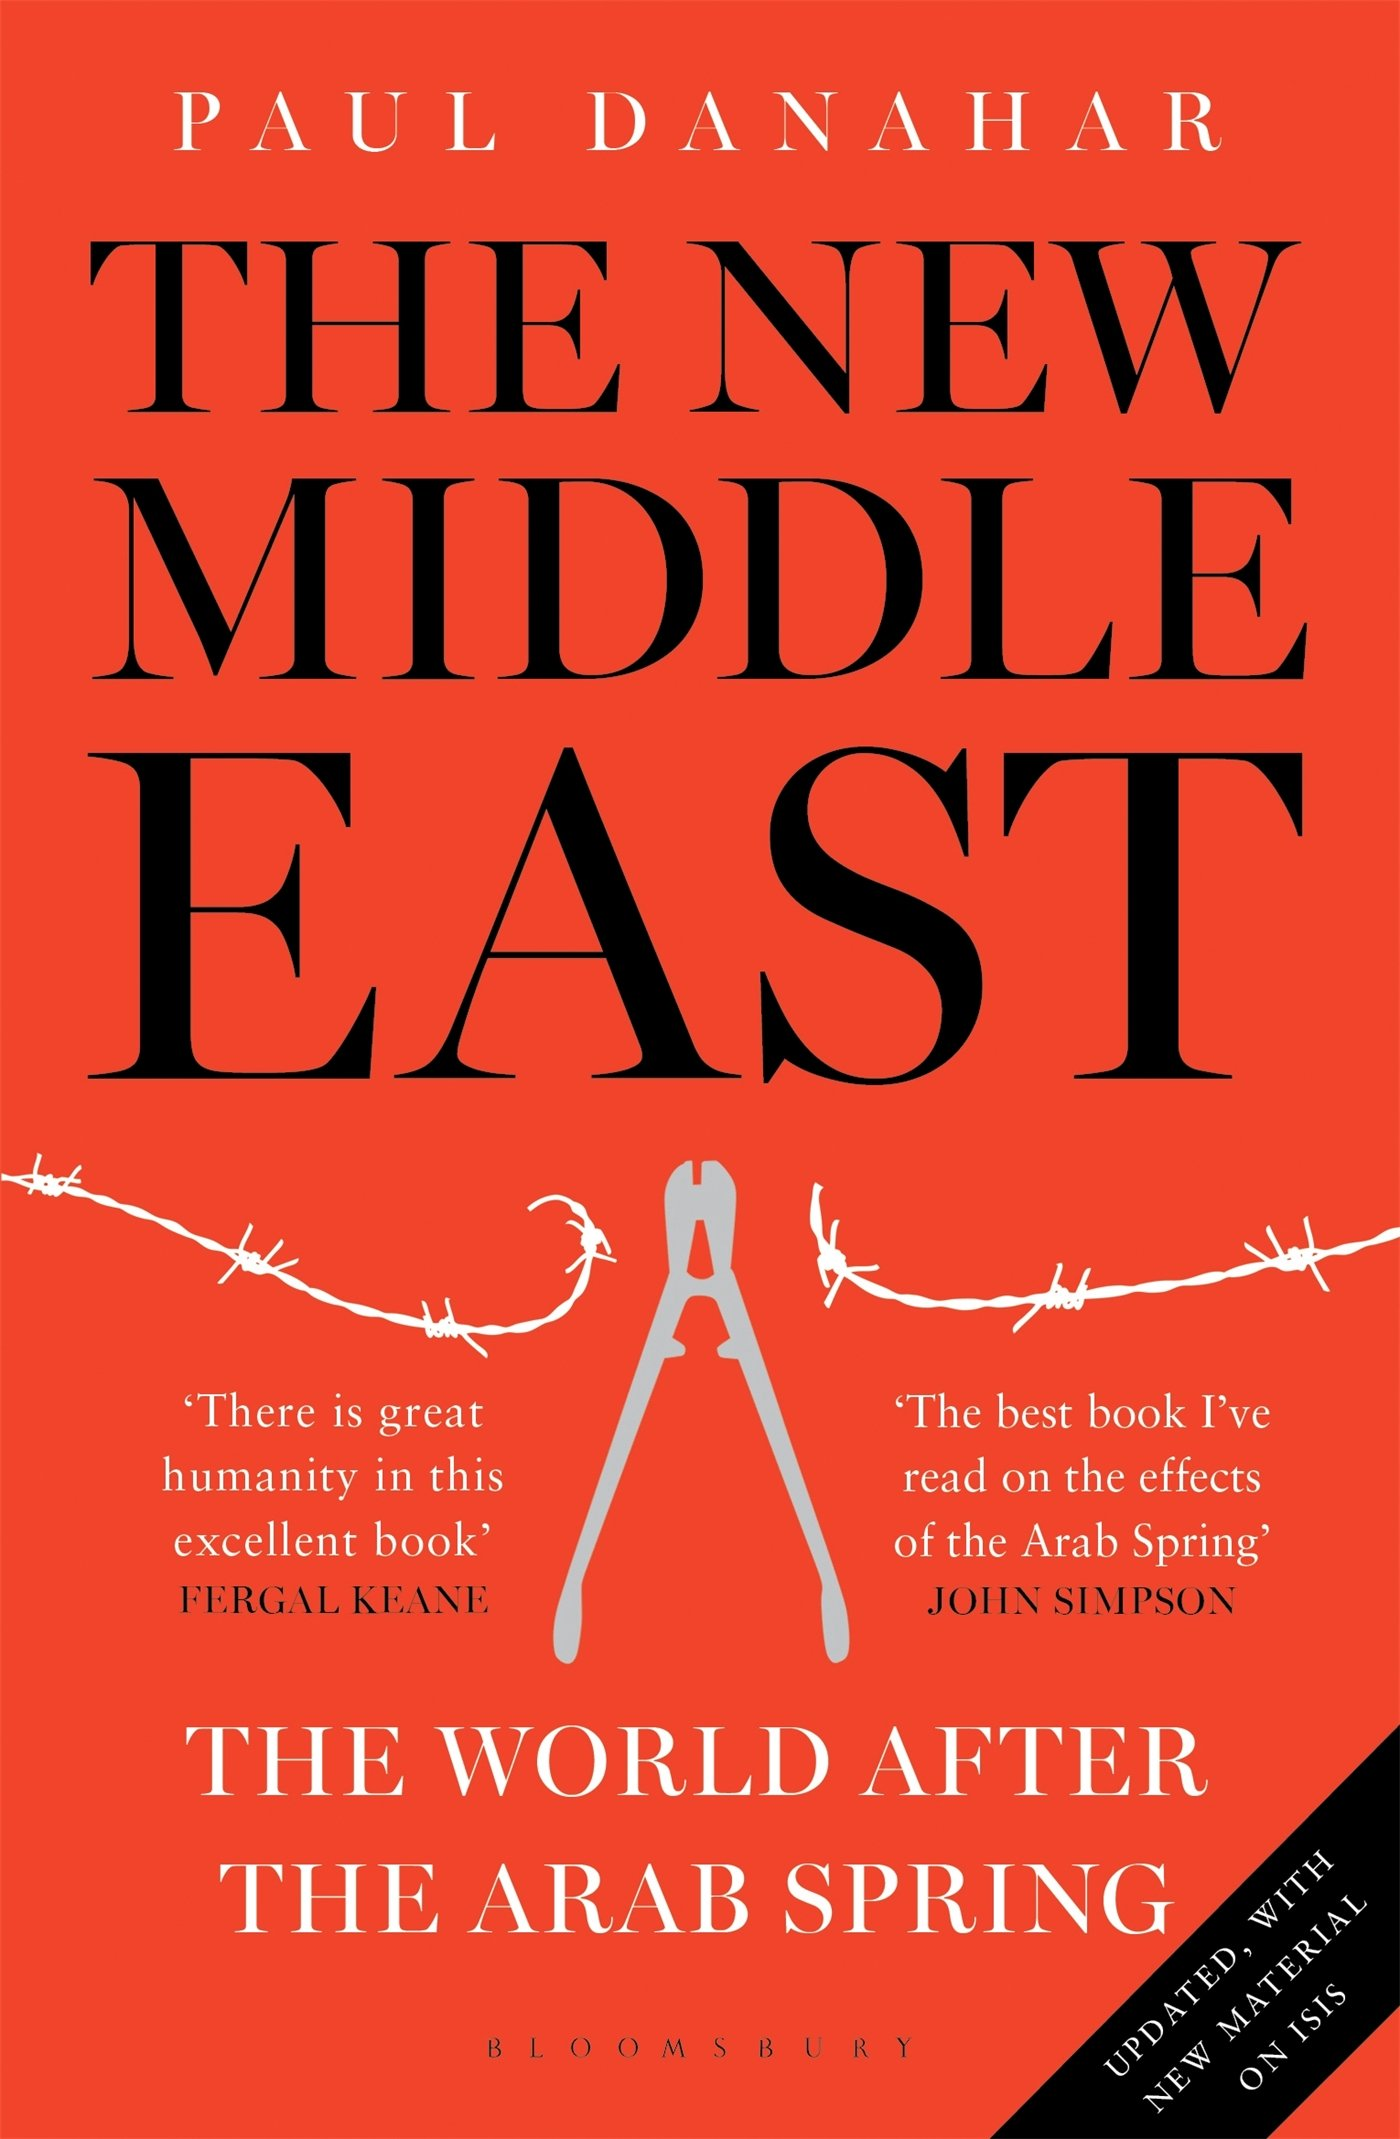 The New Middle East The World After The Arab Spring Paul Danahar